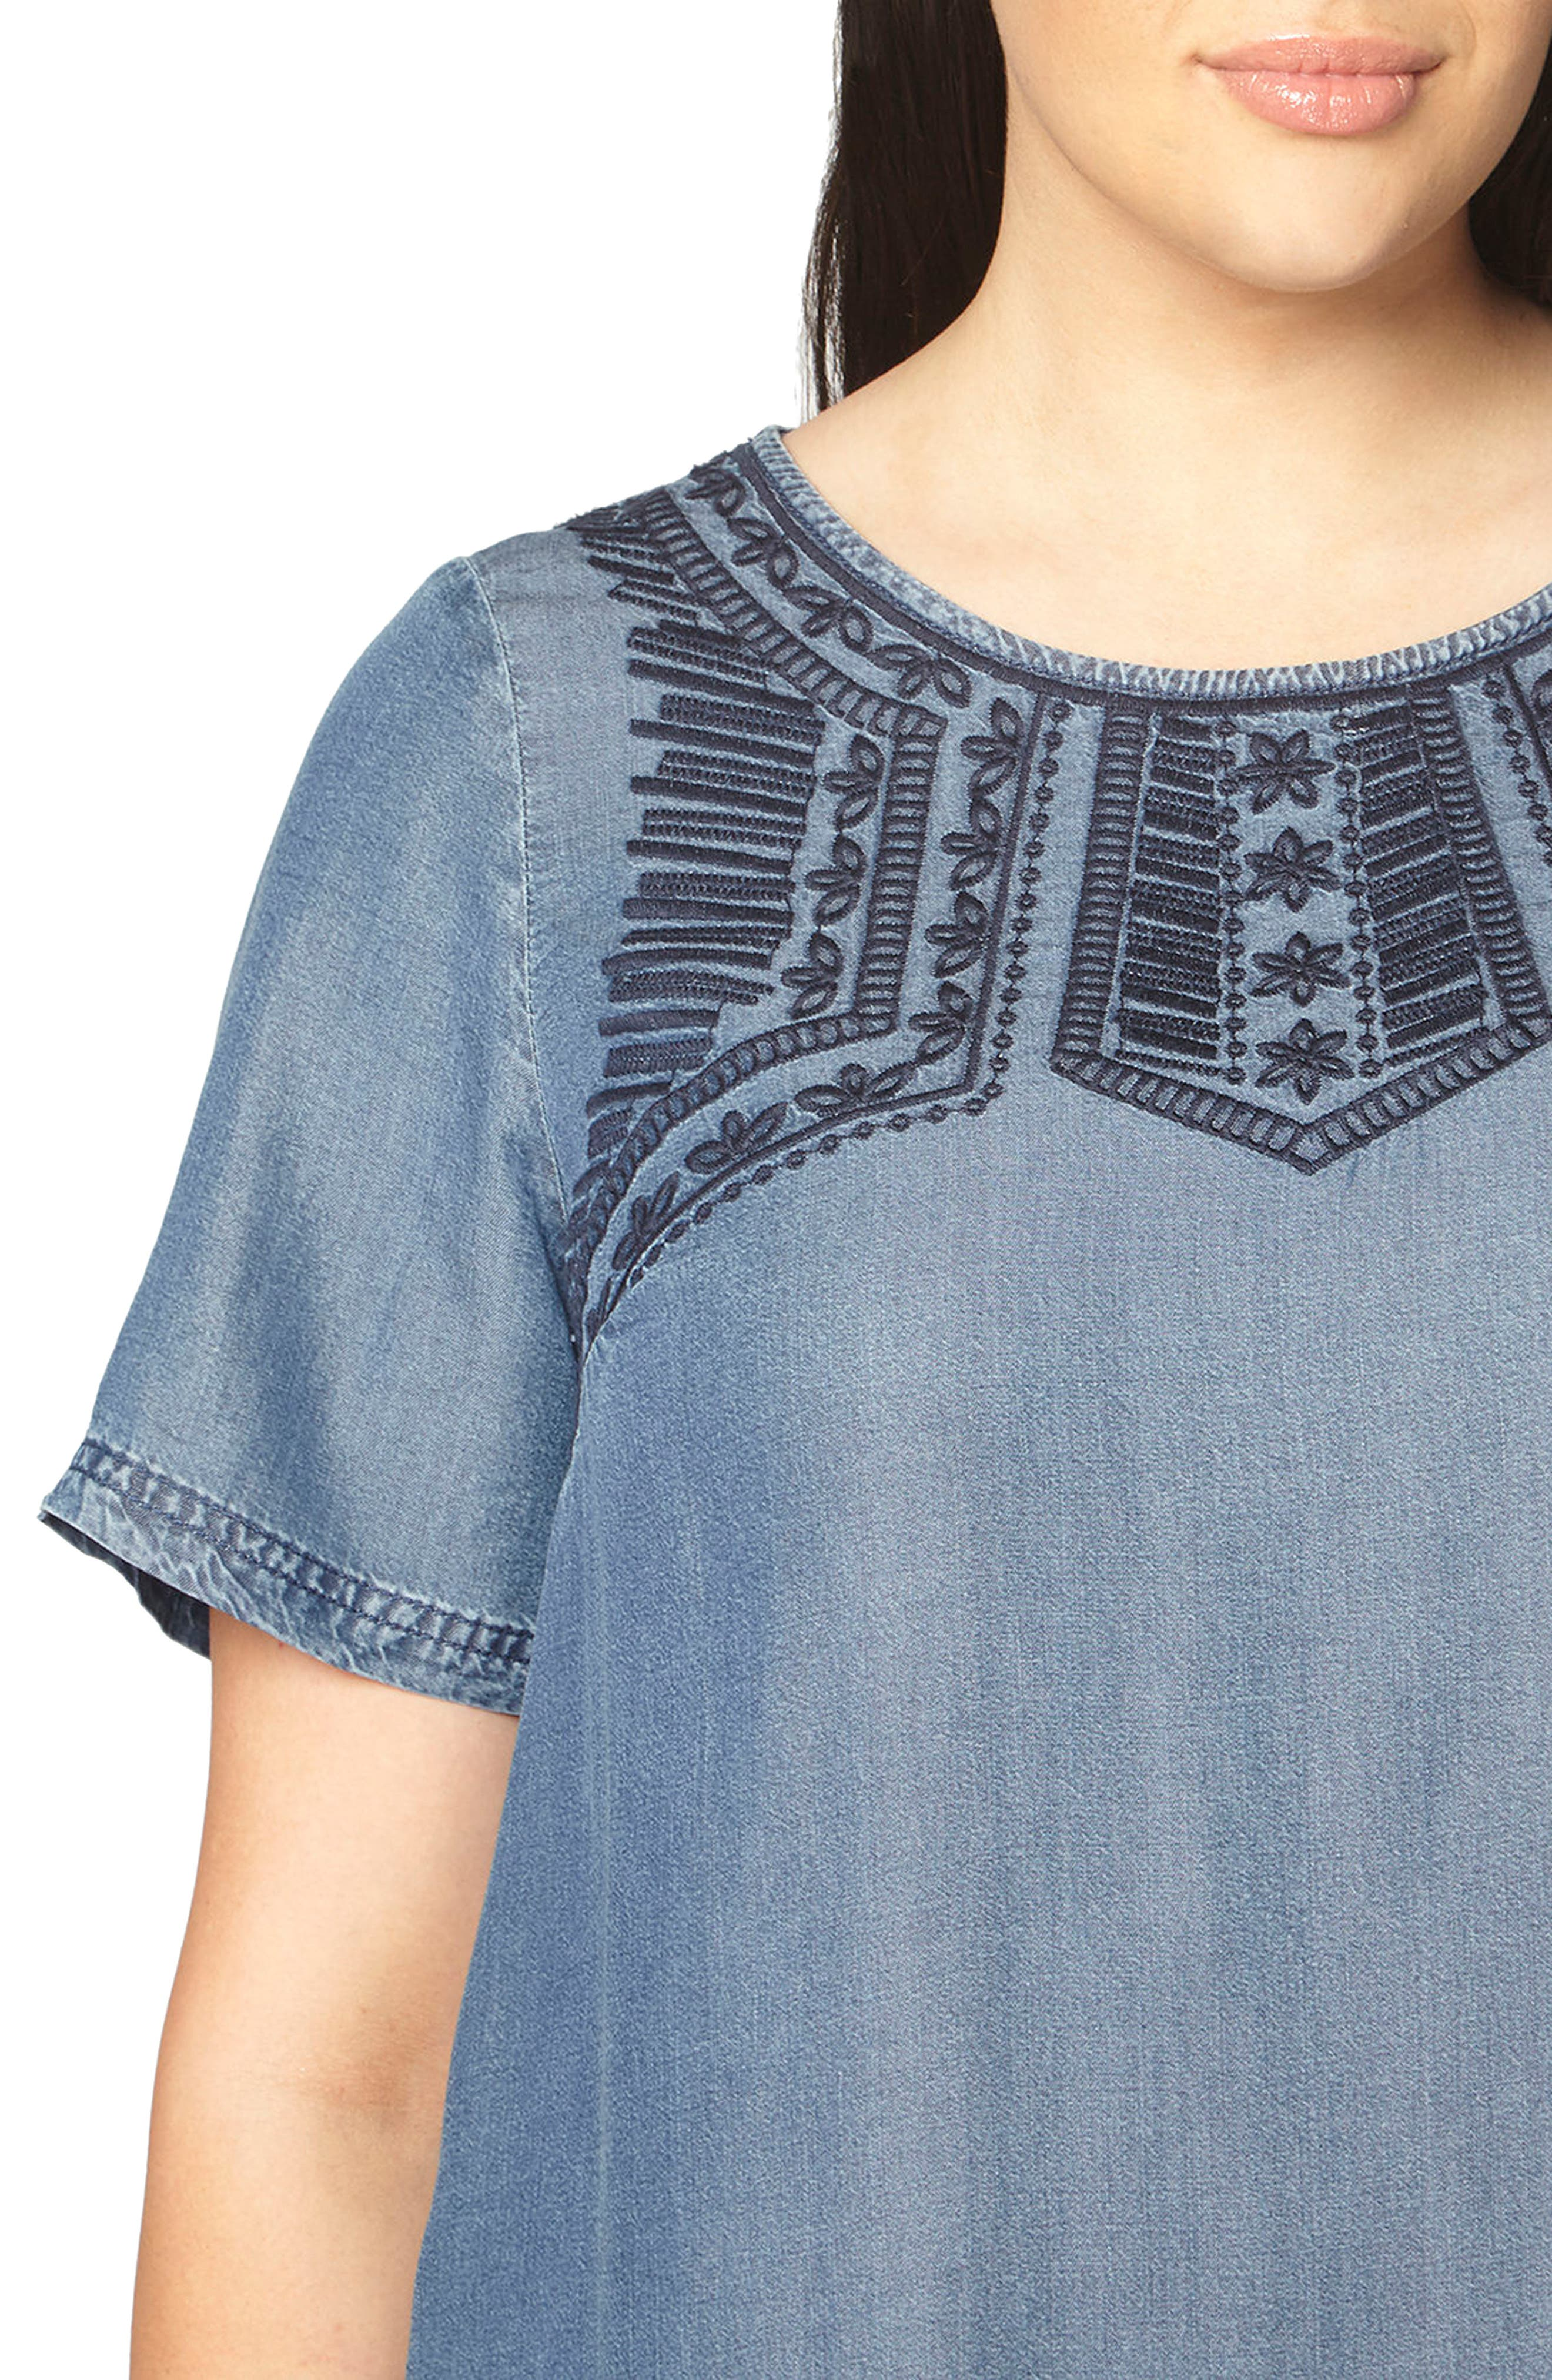 Embroidered Chambray Tunic Dress,                             Alternate thumbnail 4, color,                             Blue